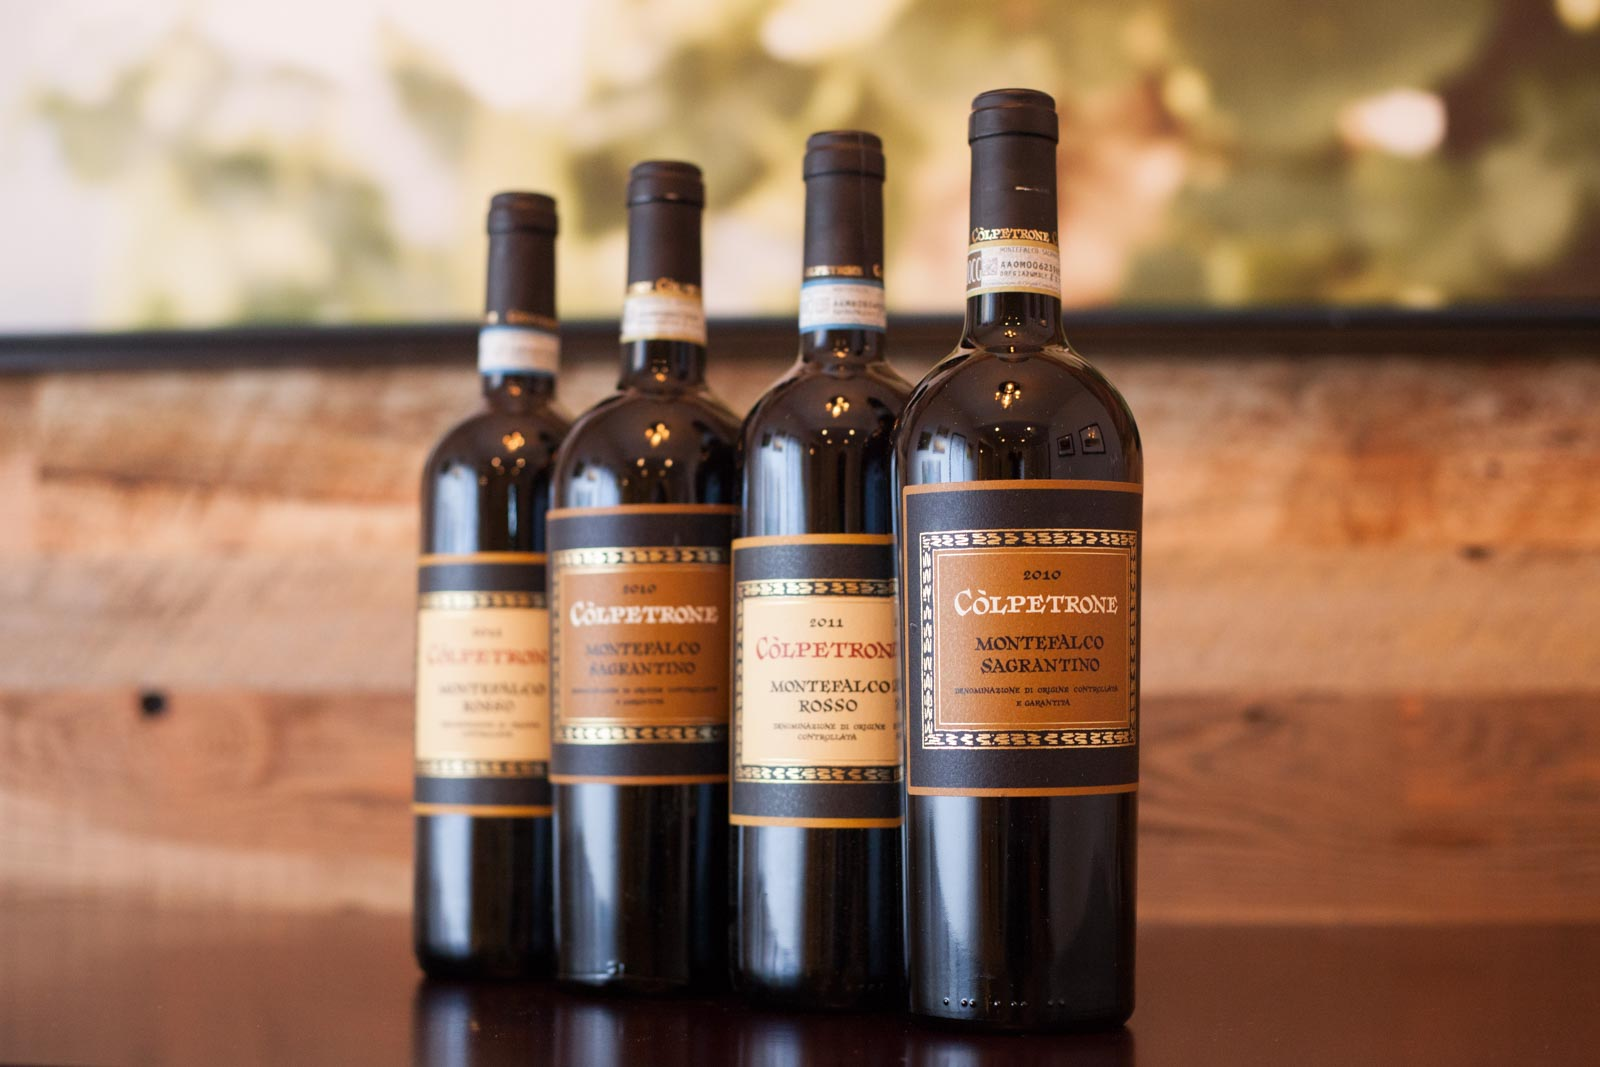 2010 Còlpetrone Montefalco Sagrantino and 2010 Còlpetrone Montefalco Rosso